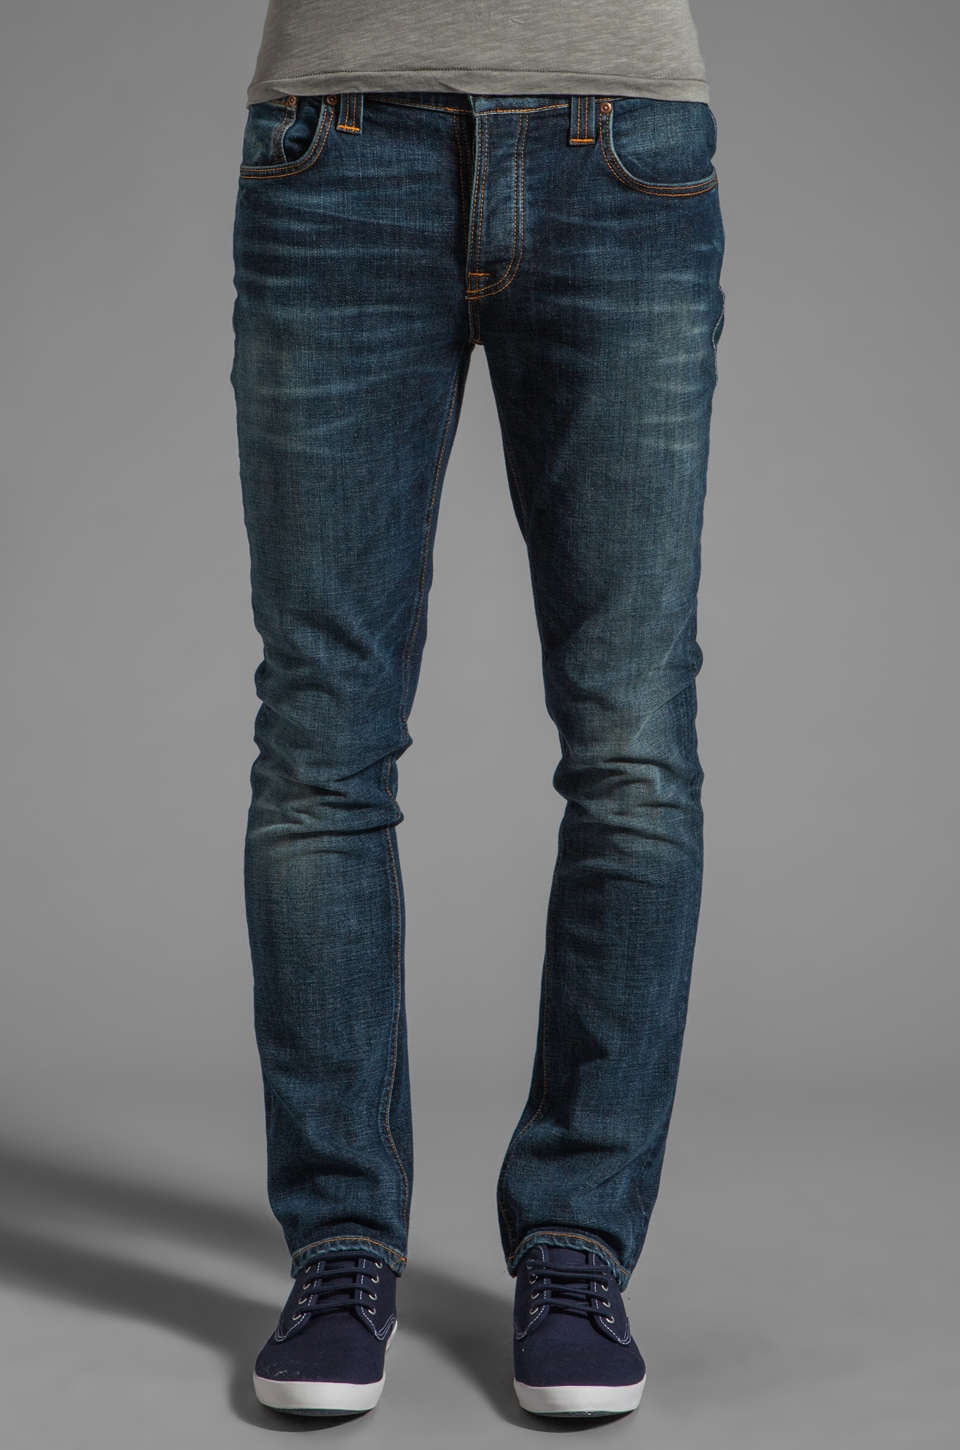 Nudie Jeans Grim Tim in Organic Crushed Denim